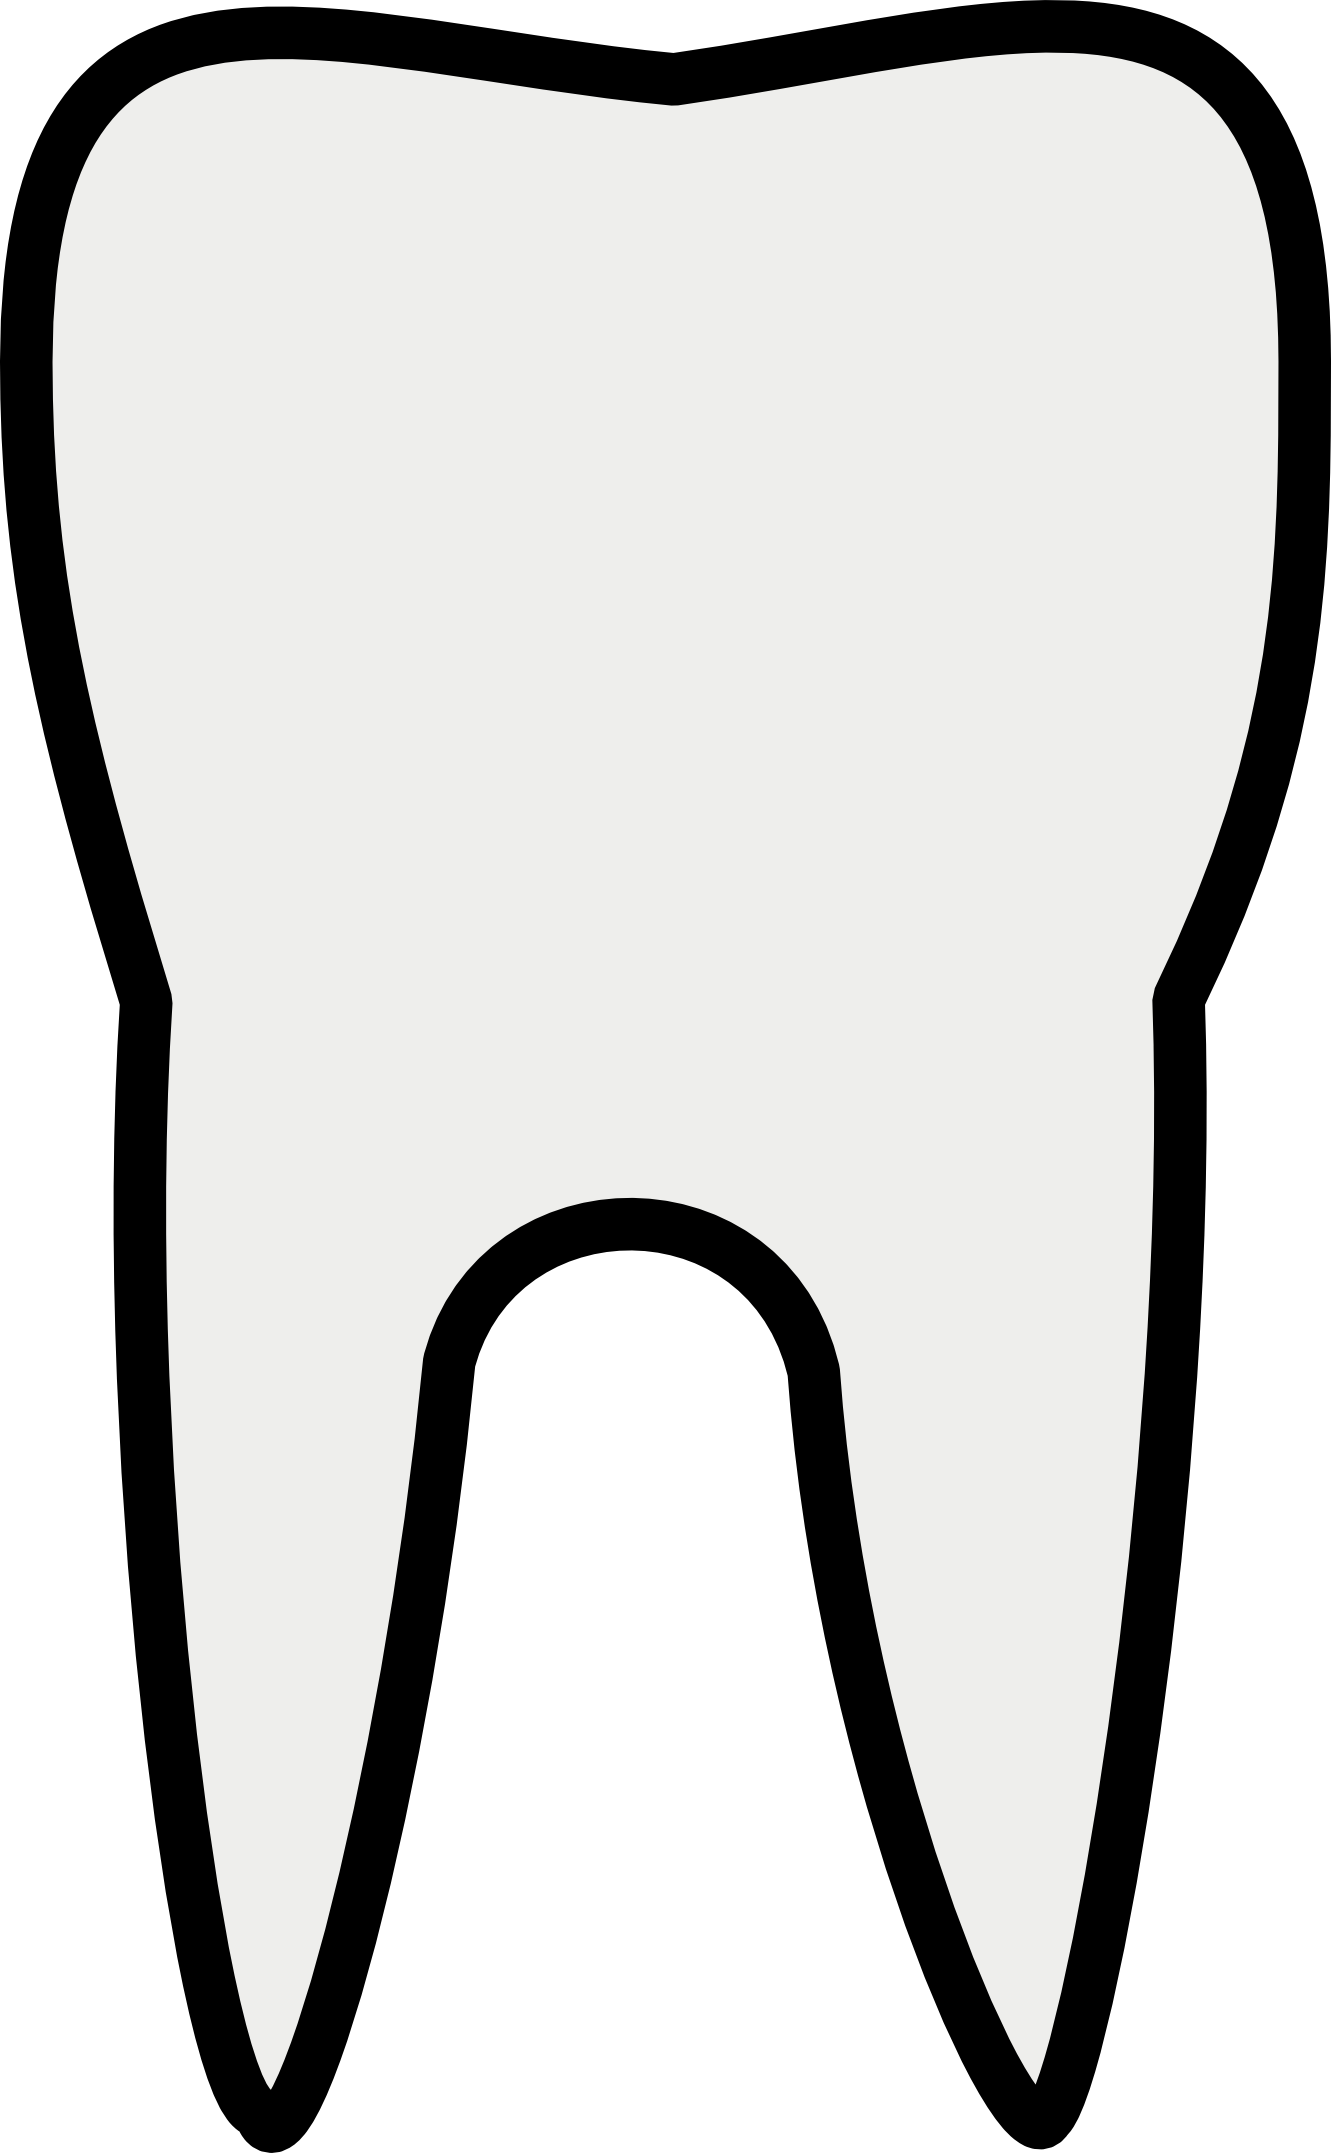 Tooth Clip Art - Cliparts.co